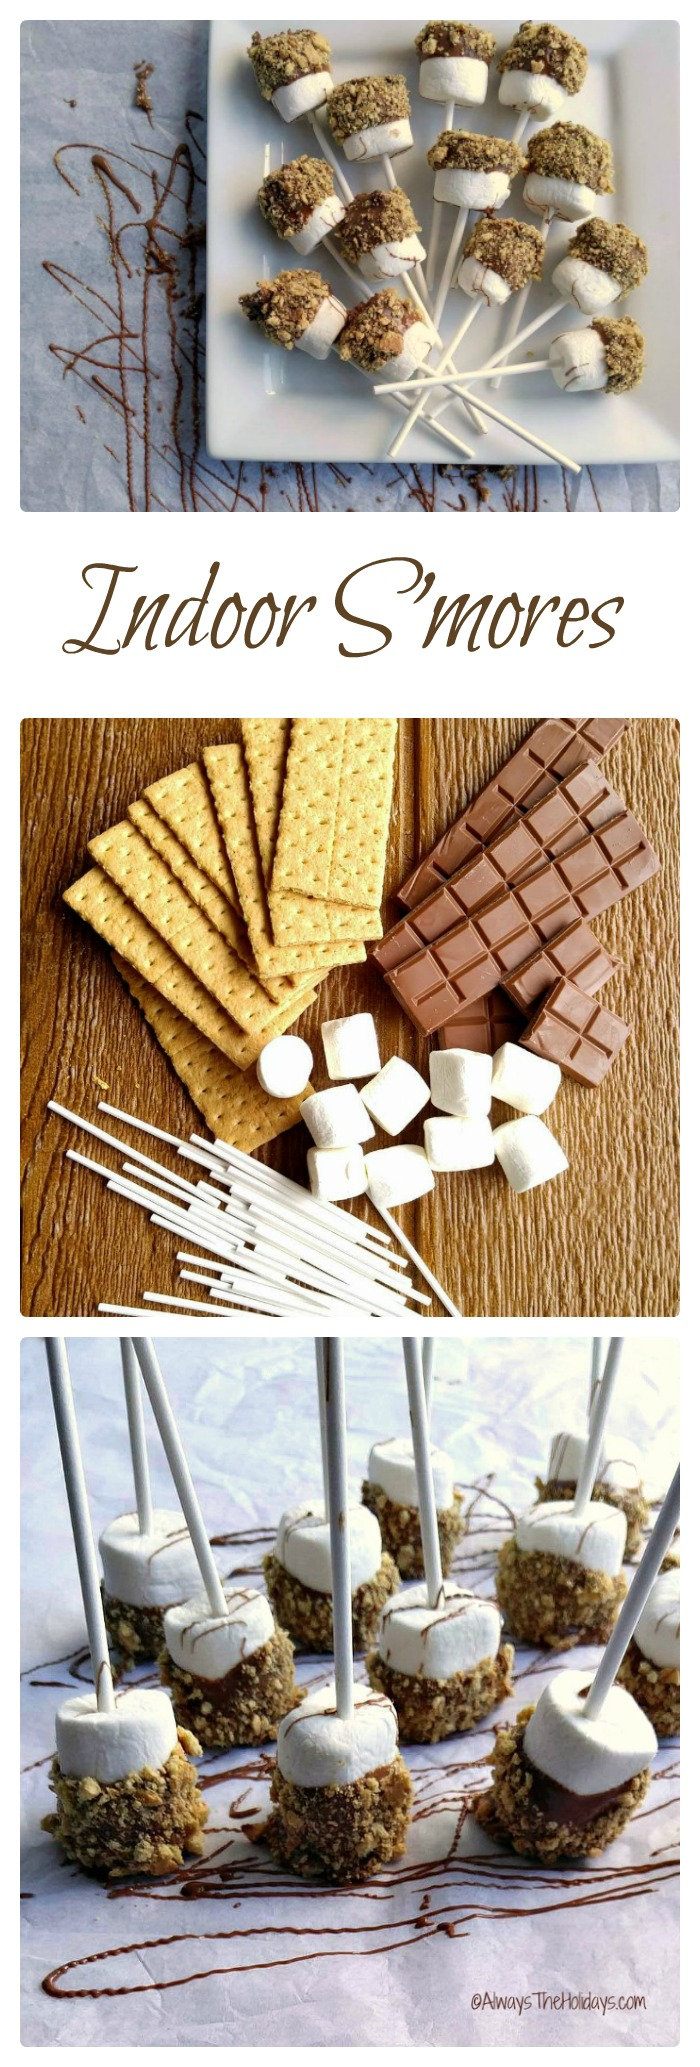 These indoor s'mores are the perfect rainy day snack for those days when you can't go camping.  alwaystheholidays.com